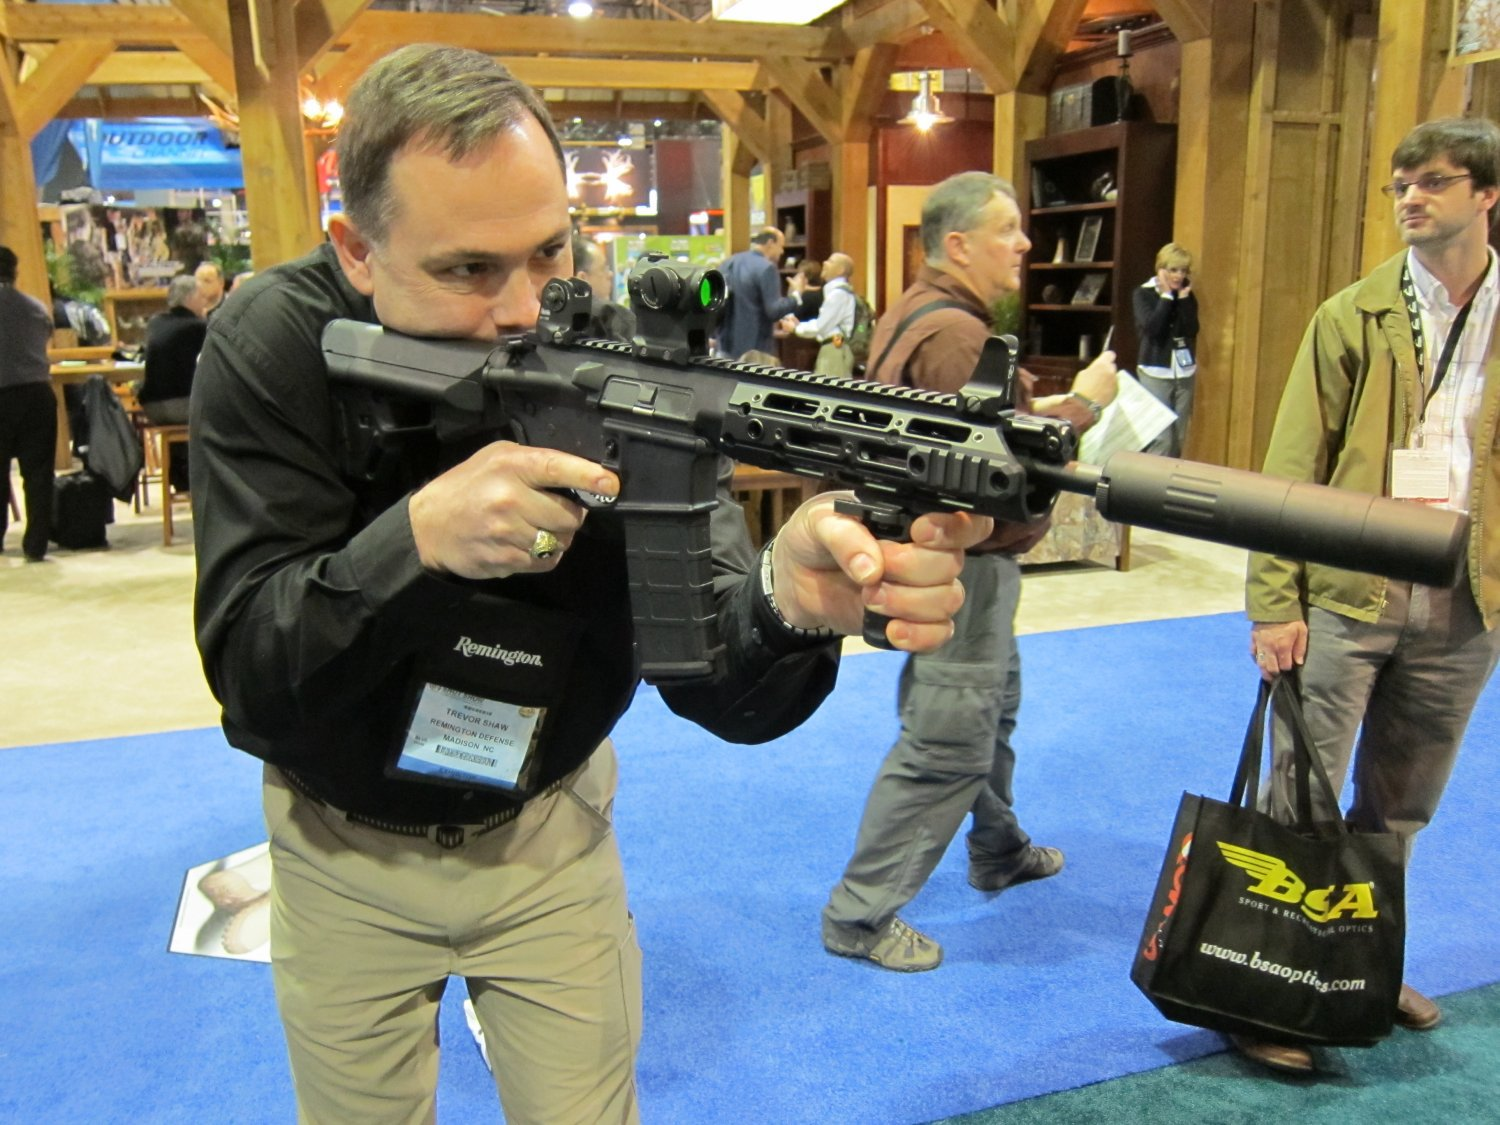 Remington Military R-4 Gas Piston Carbine (GPC) Tactical AR Carbine with Proprietary Monolithic Rail System (Pics!)